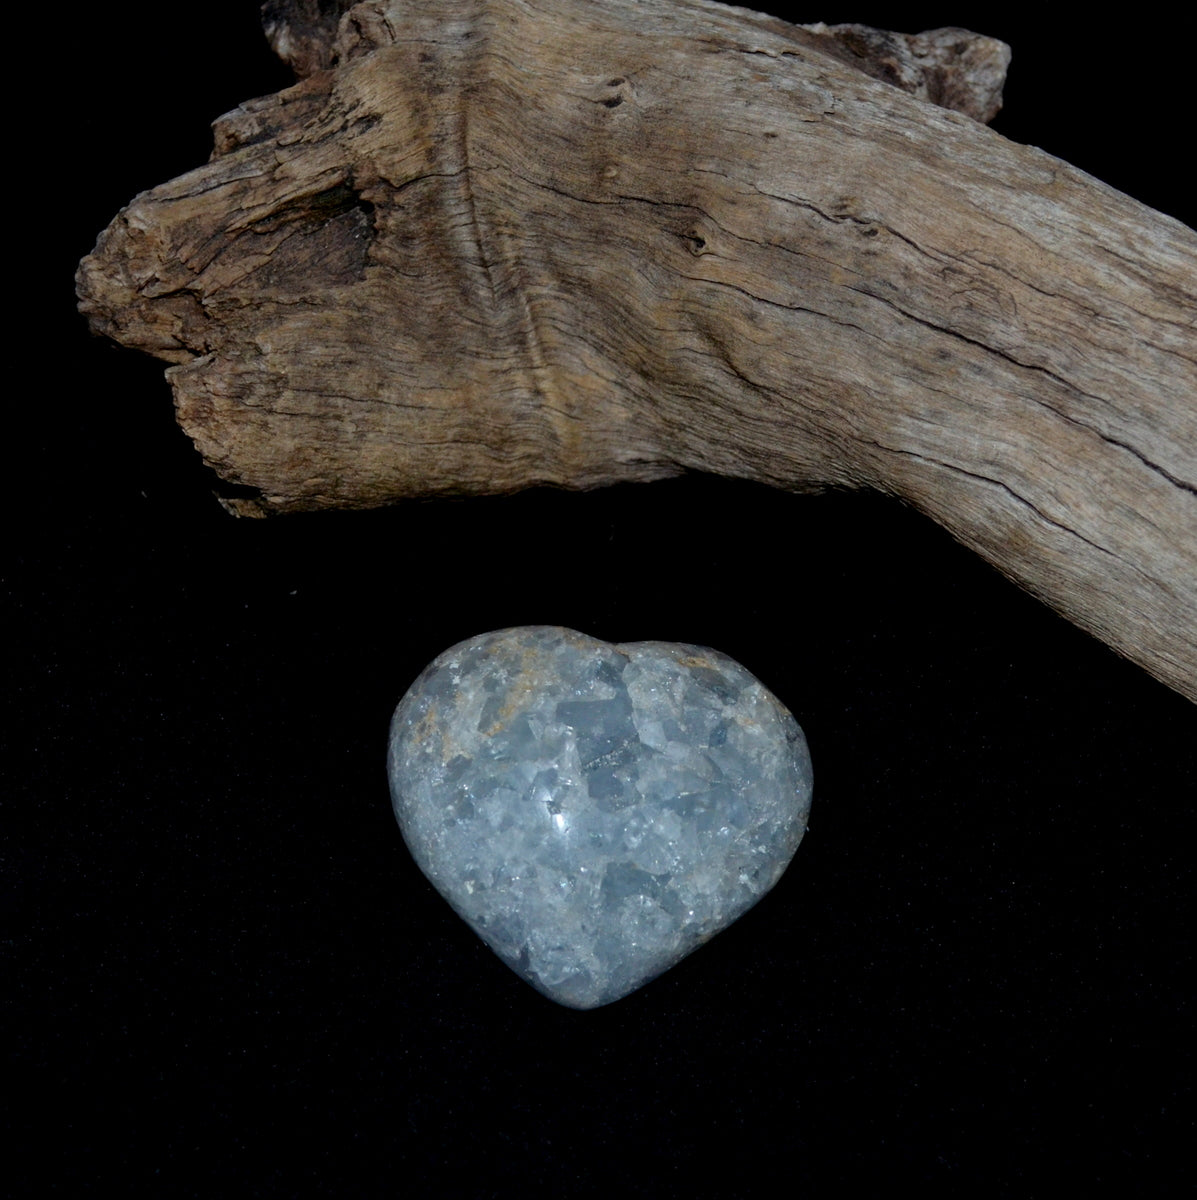 Celestite Geode Heart Madagascar - Celestial Realm Angels Harmony Calm - Shop now at Illiom Crystals - Afterpay Available